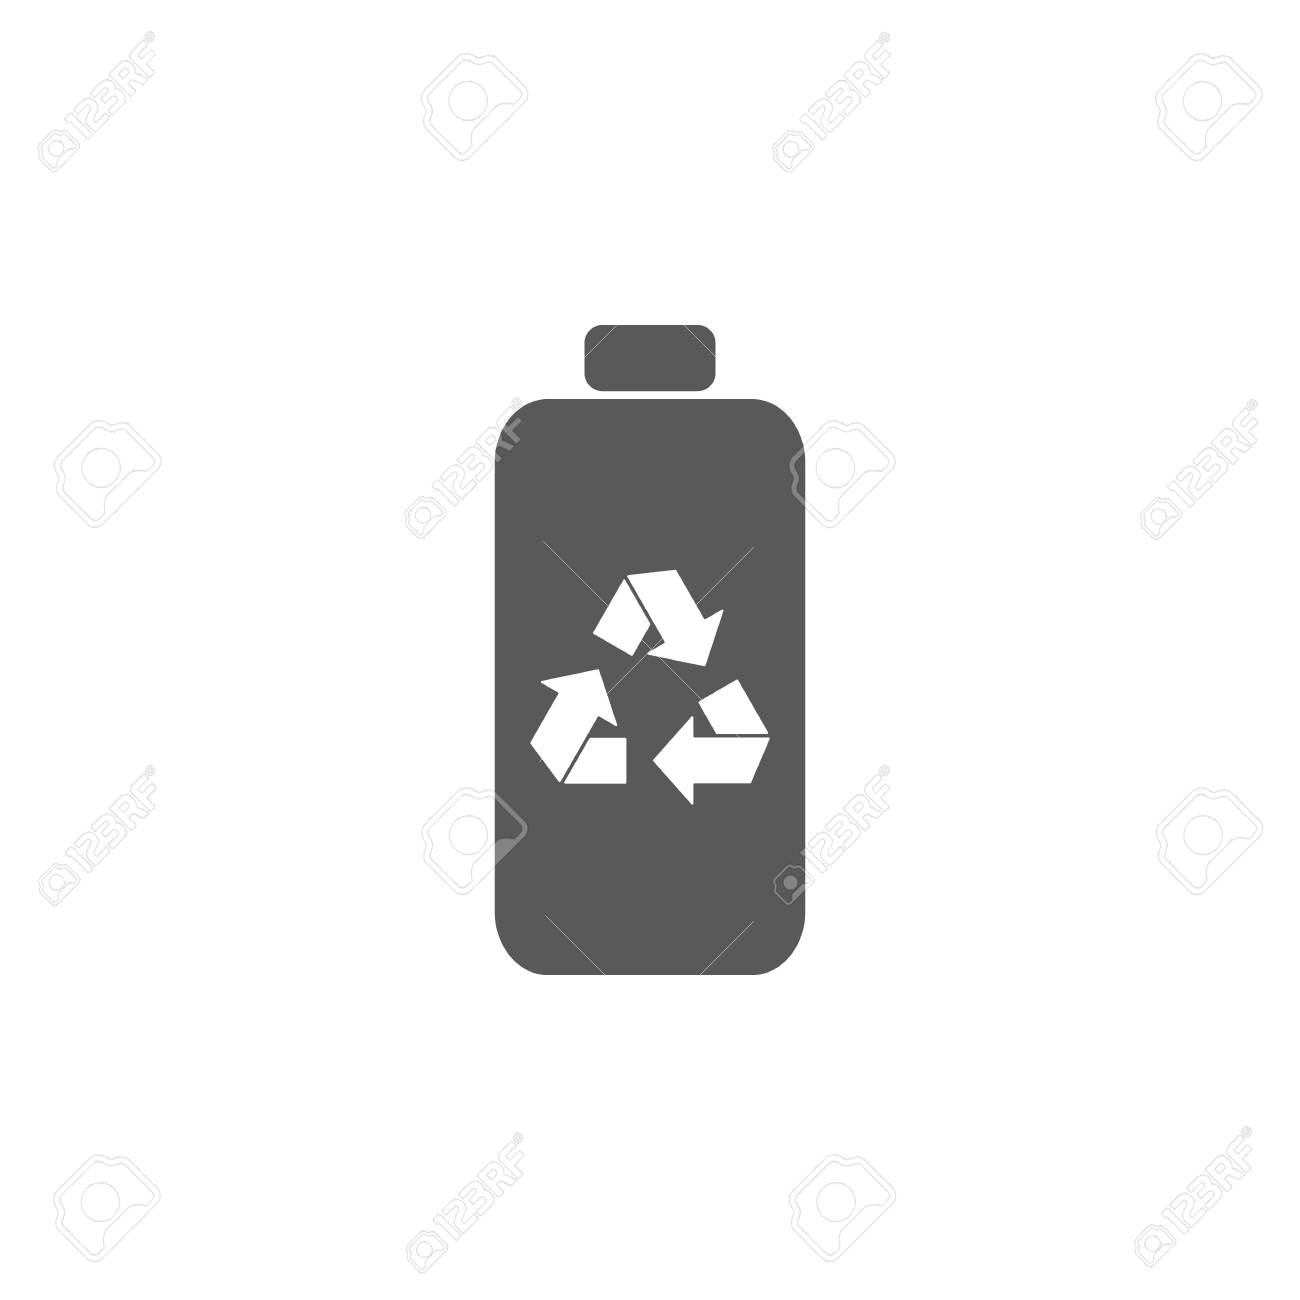 recycling battery icon battery vector illustration icons set royalty free cliparts vectors and stock illustration image 94353229 recycling battery icon battery vector illustration icons set